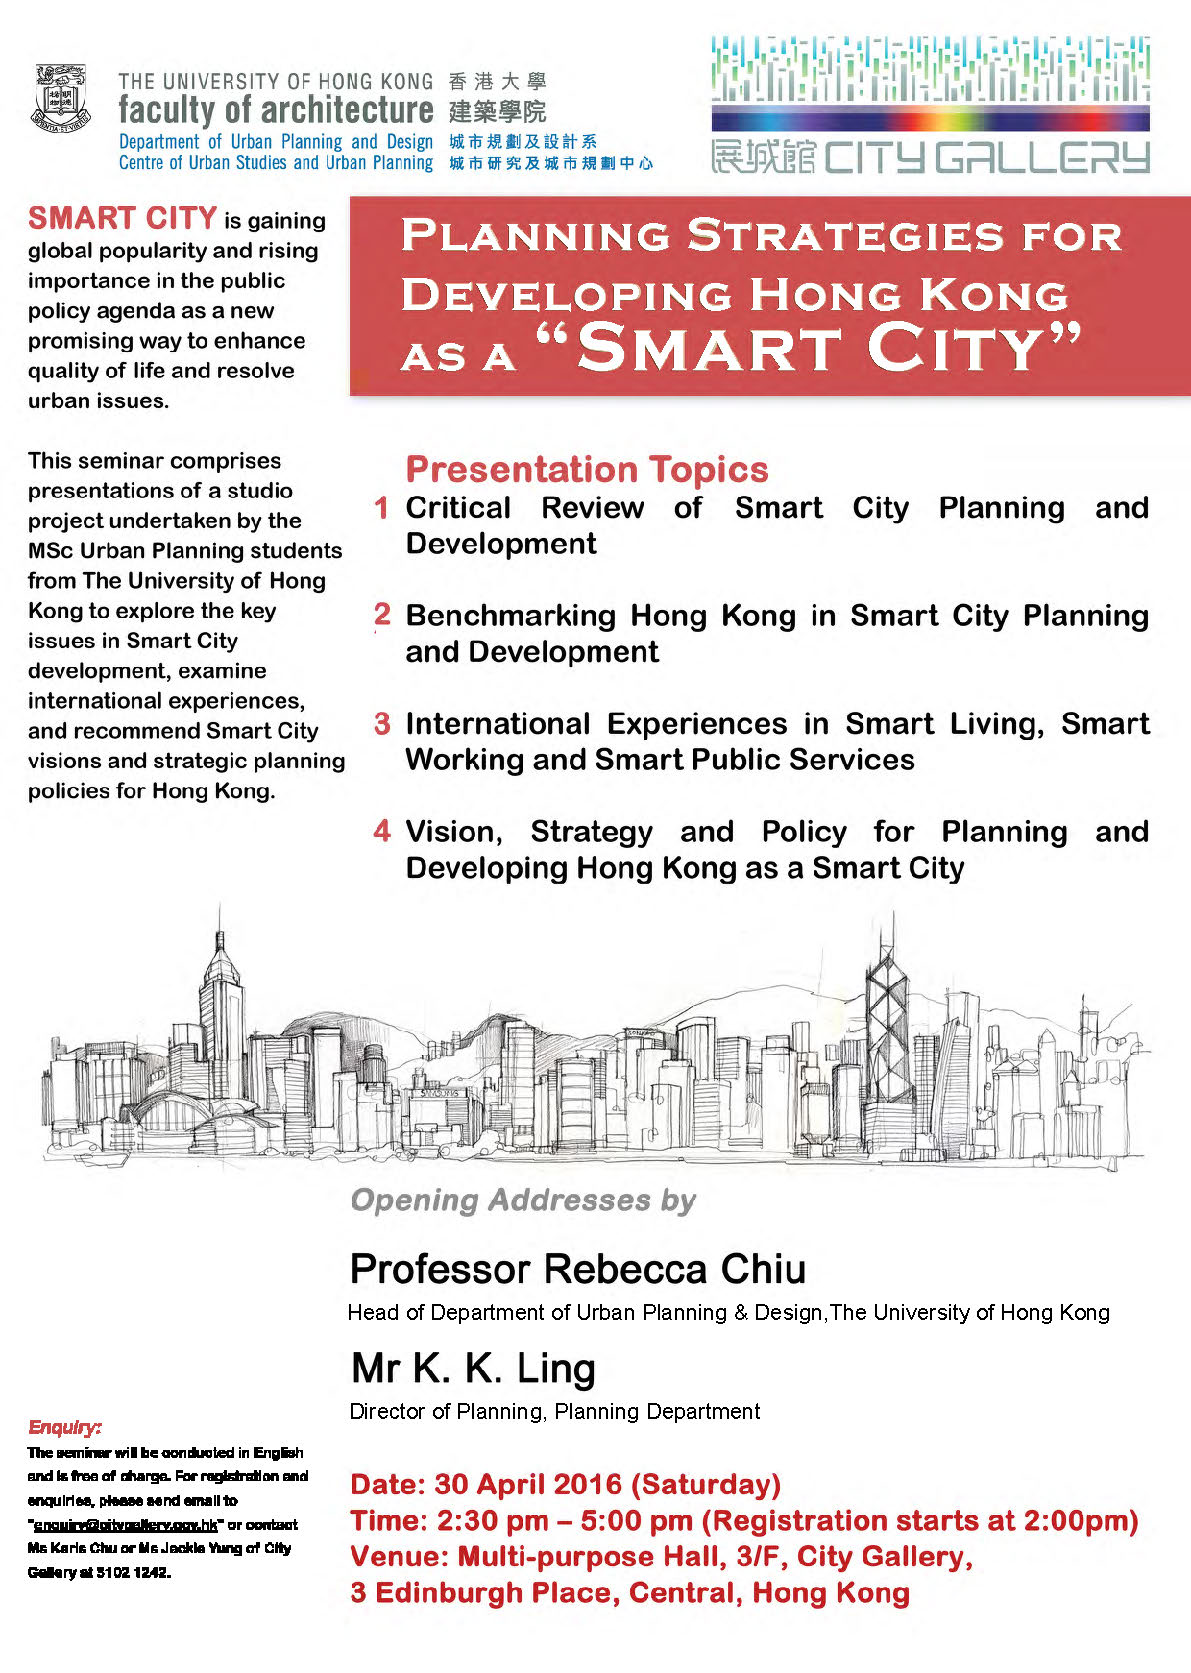 """Planning Strategies for Developing Hong Kong as a """"Smart City"""""""